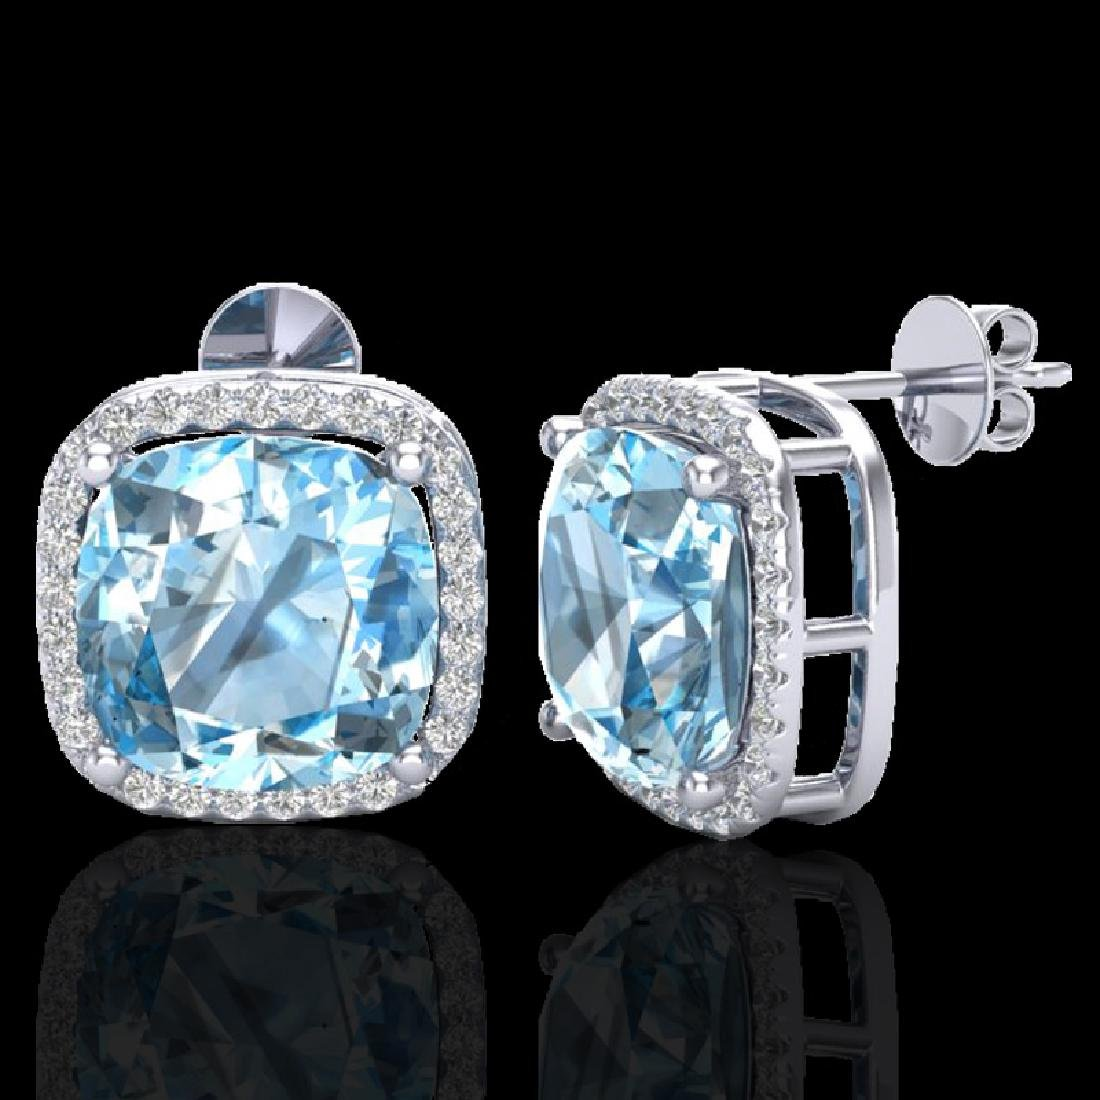 12 CTW Sky Blue Topaz & Pave Halo VS/SI Diamond - 2